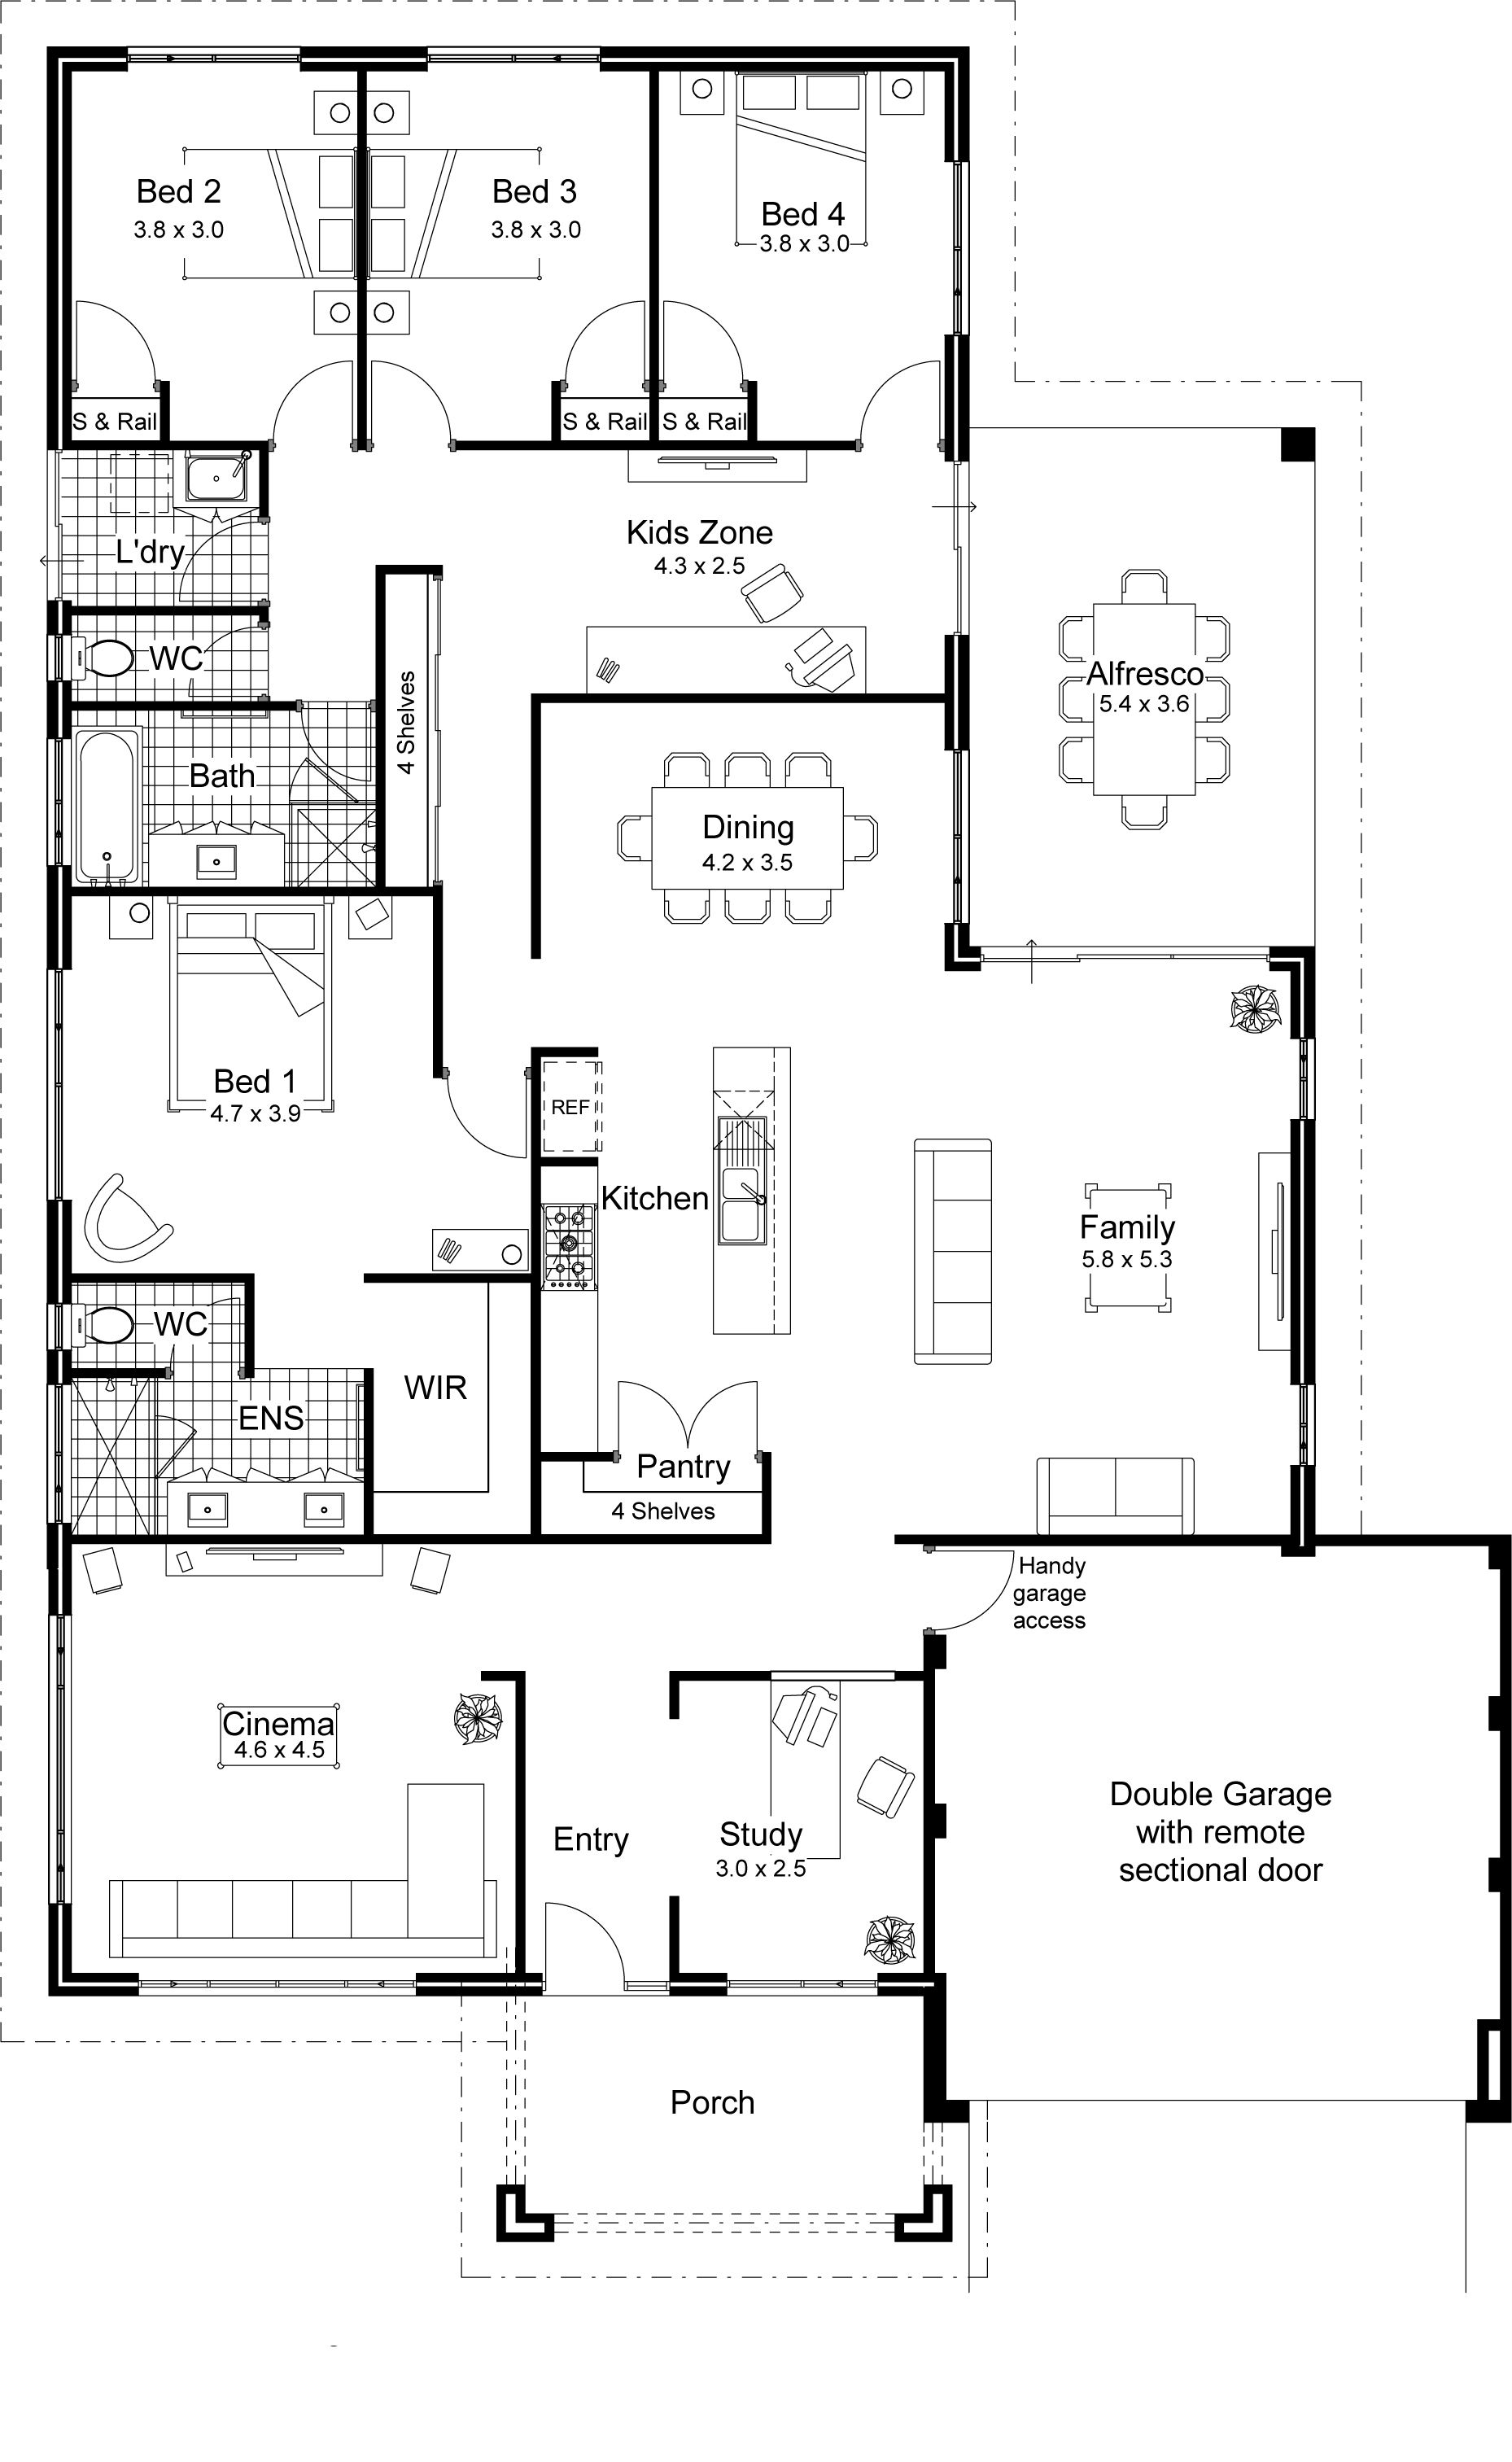 Open Floor Plans For Homes With Modern Open Floor Plans For One Story Homes Modern Floor Plans Open Concept House Plans Open Floor House Plans